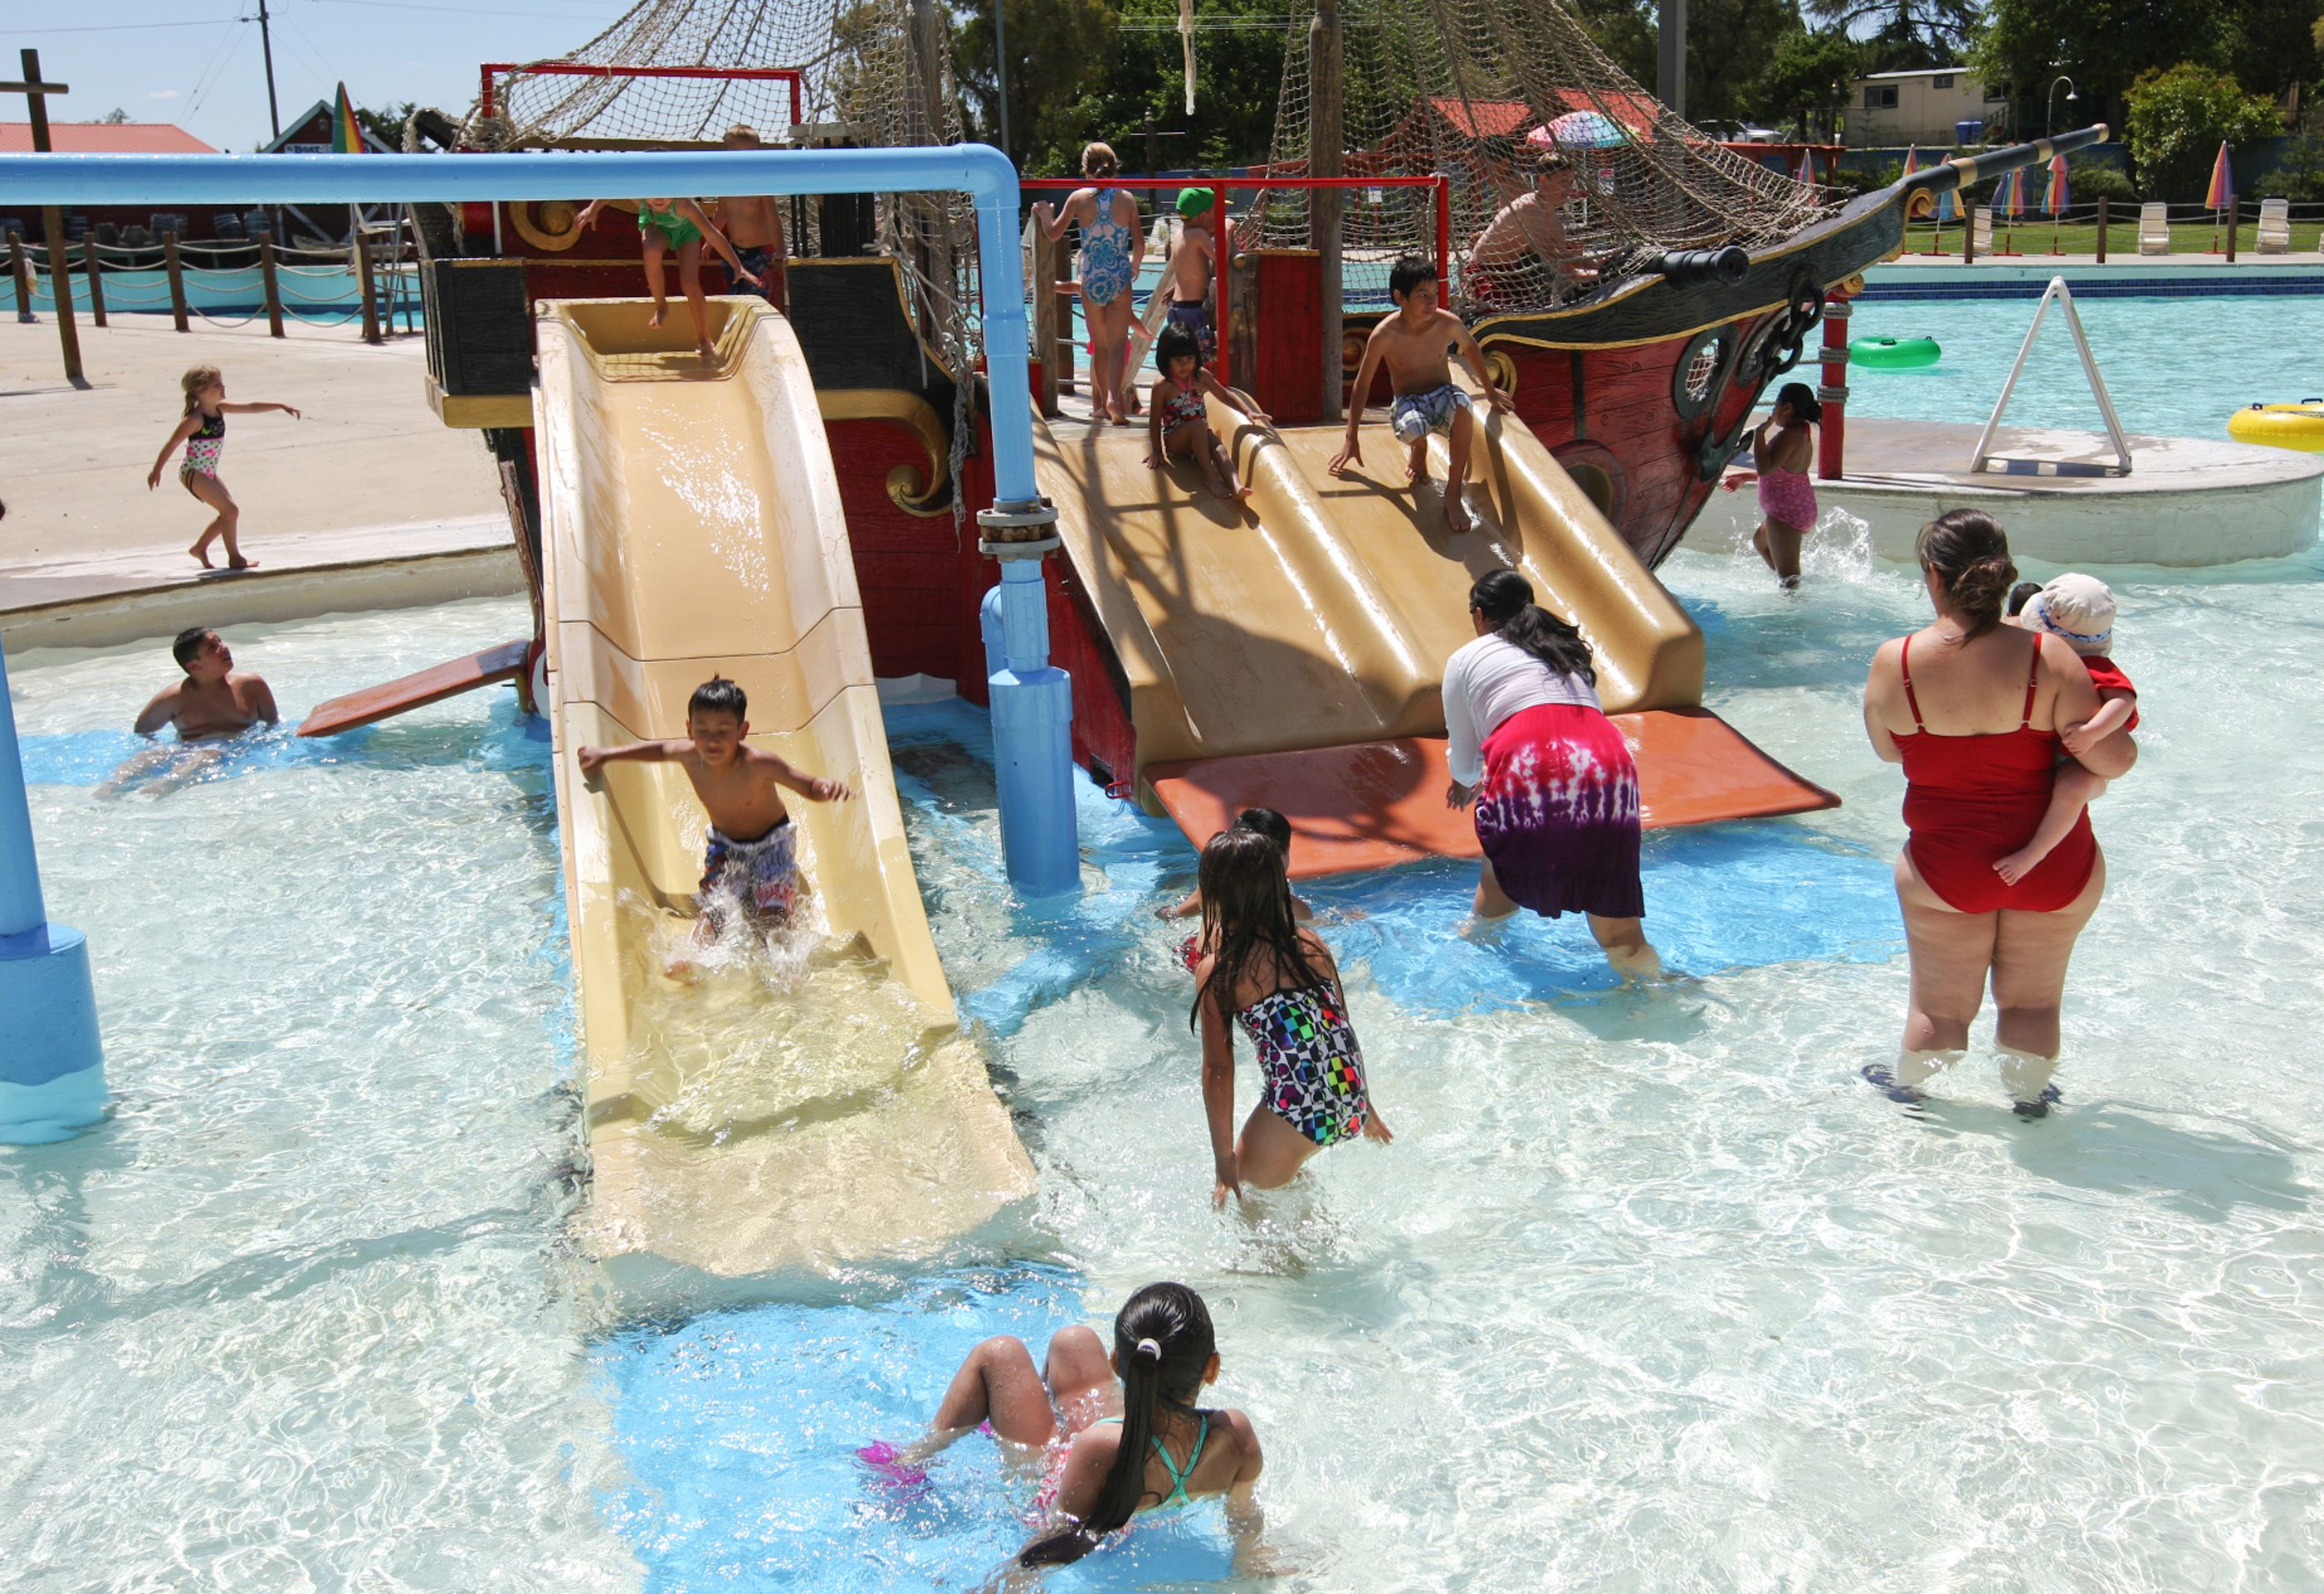 Visit Wild Water Adventure Park In Clovis Ca The Valley S Favorite